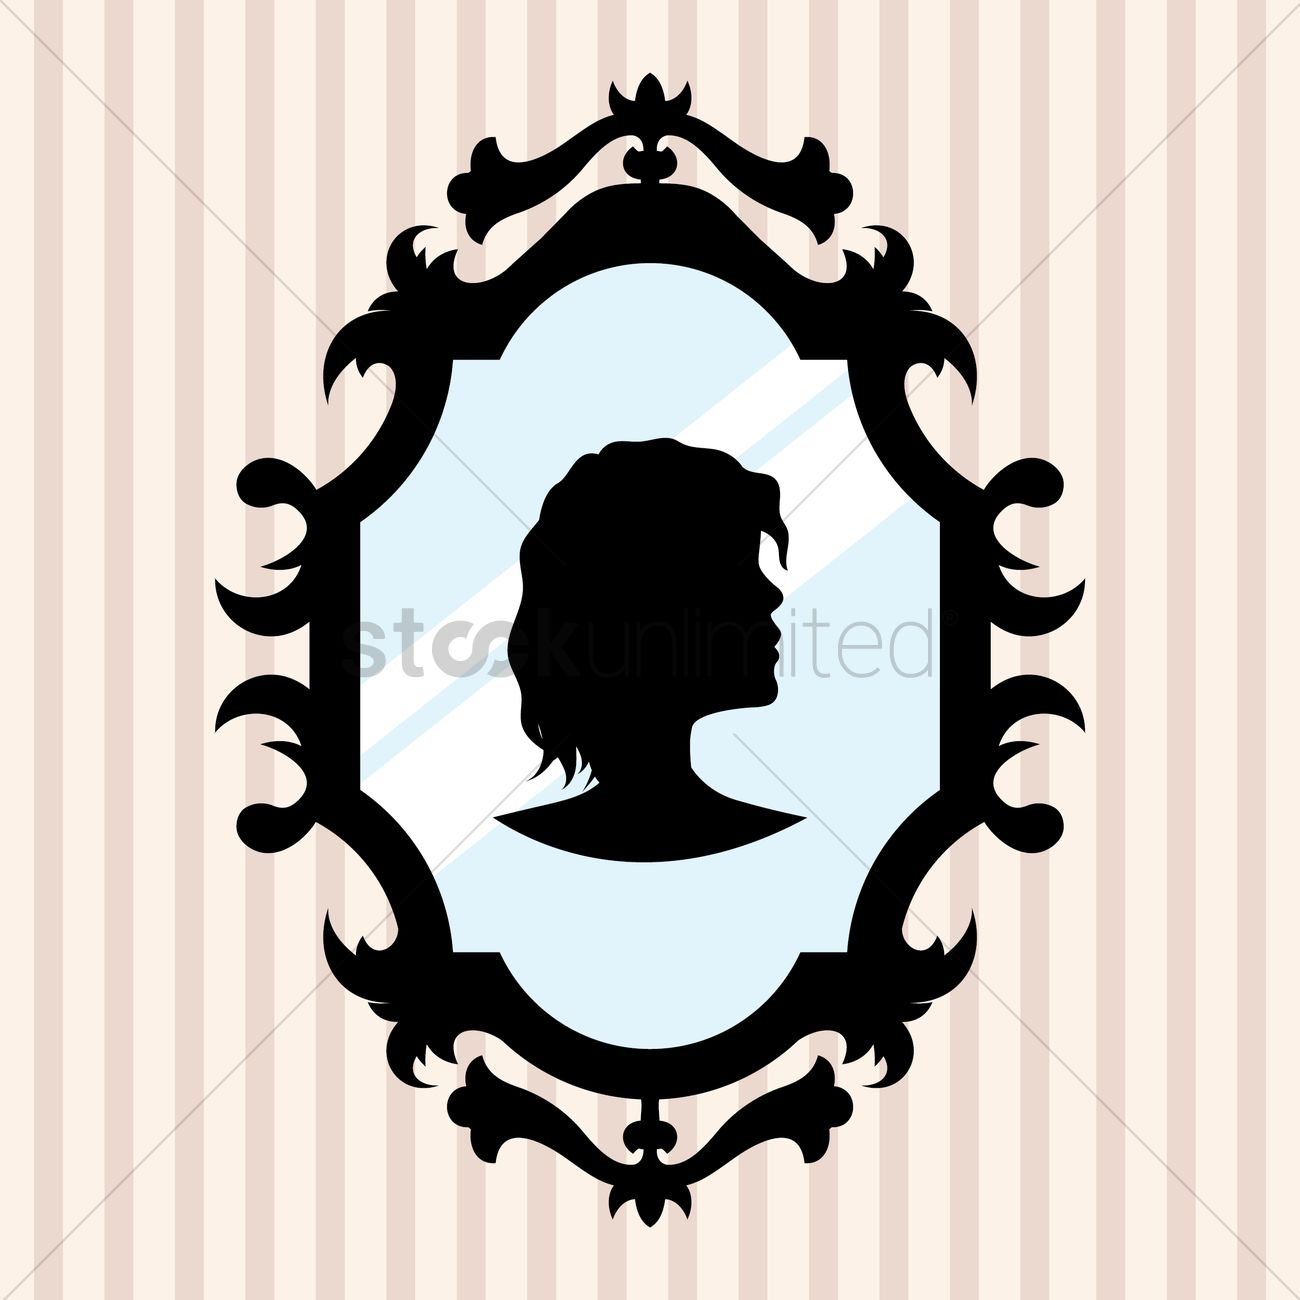 Mirror frame vector Antique Mirror Silhouette In Mirror Frame Vector Graphic Stockunlimited Silhouette In Mirror Frame Vector Image 1480213 Stockunlimited